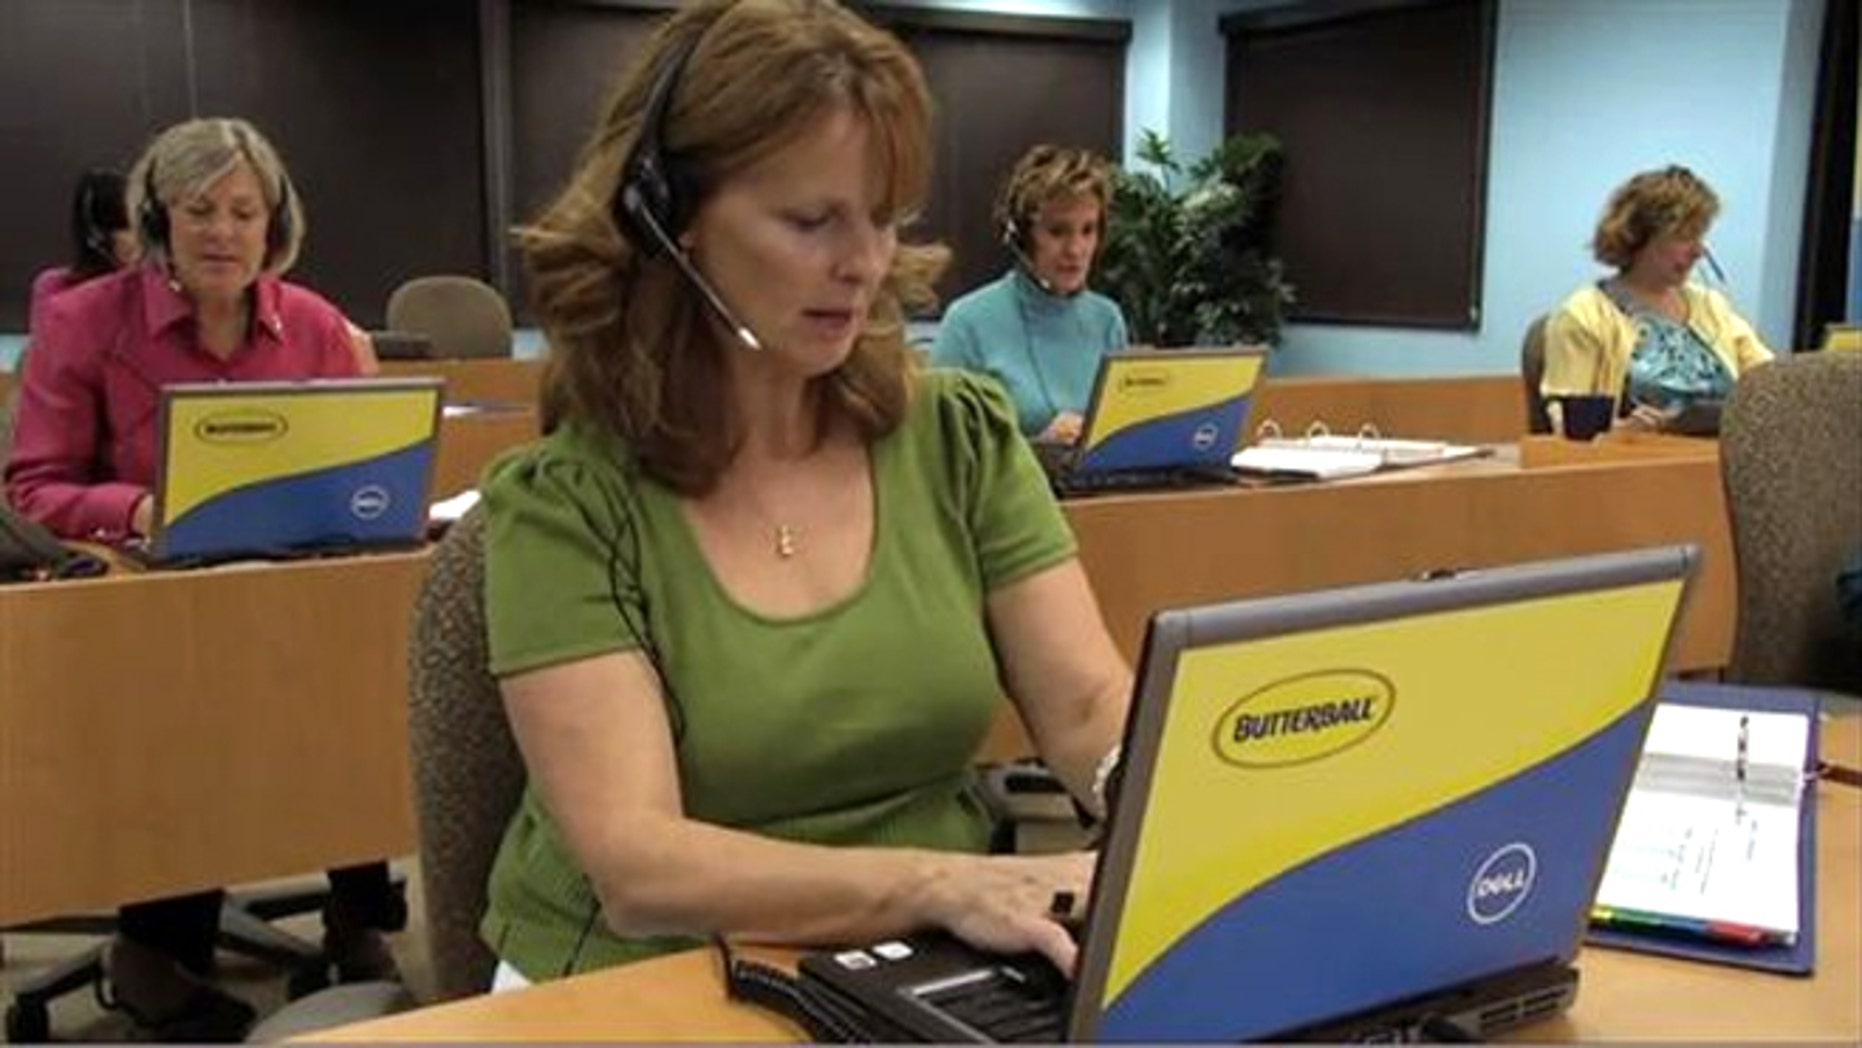 FILE: Butterball's Turkey Talk Line, which has grown from six operators to about 60 since it launched in 1981, has never hired men, until now.